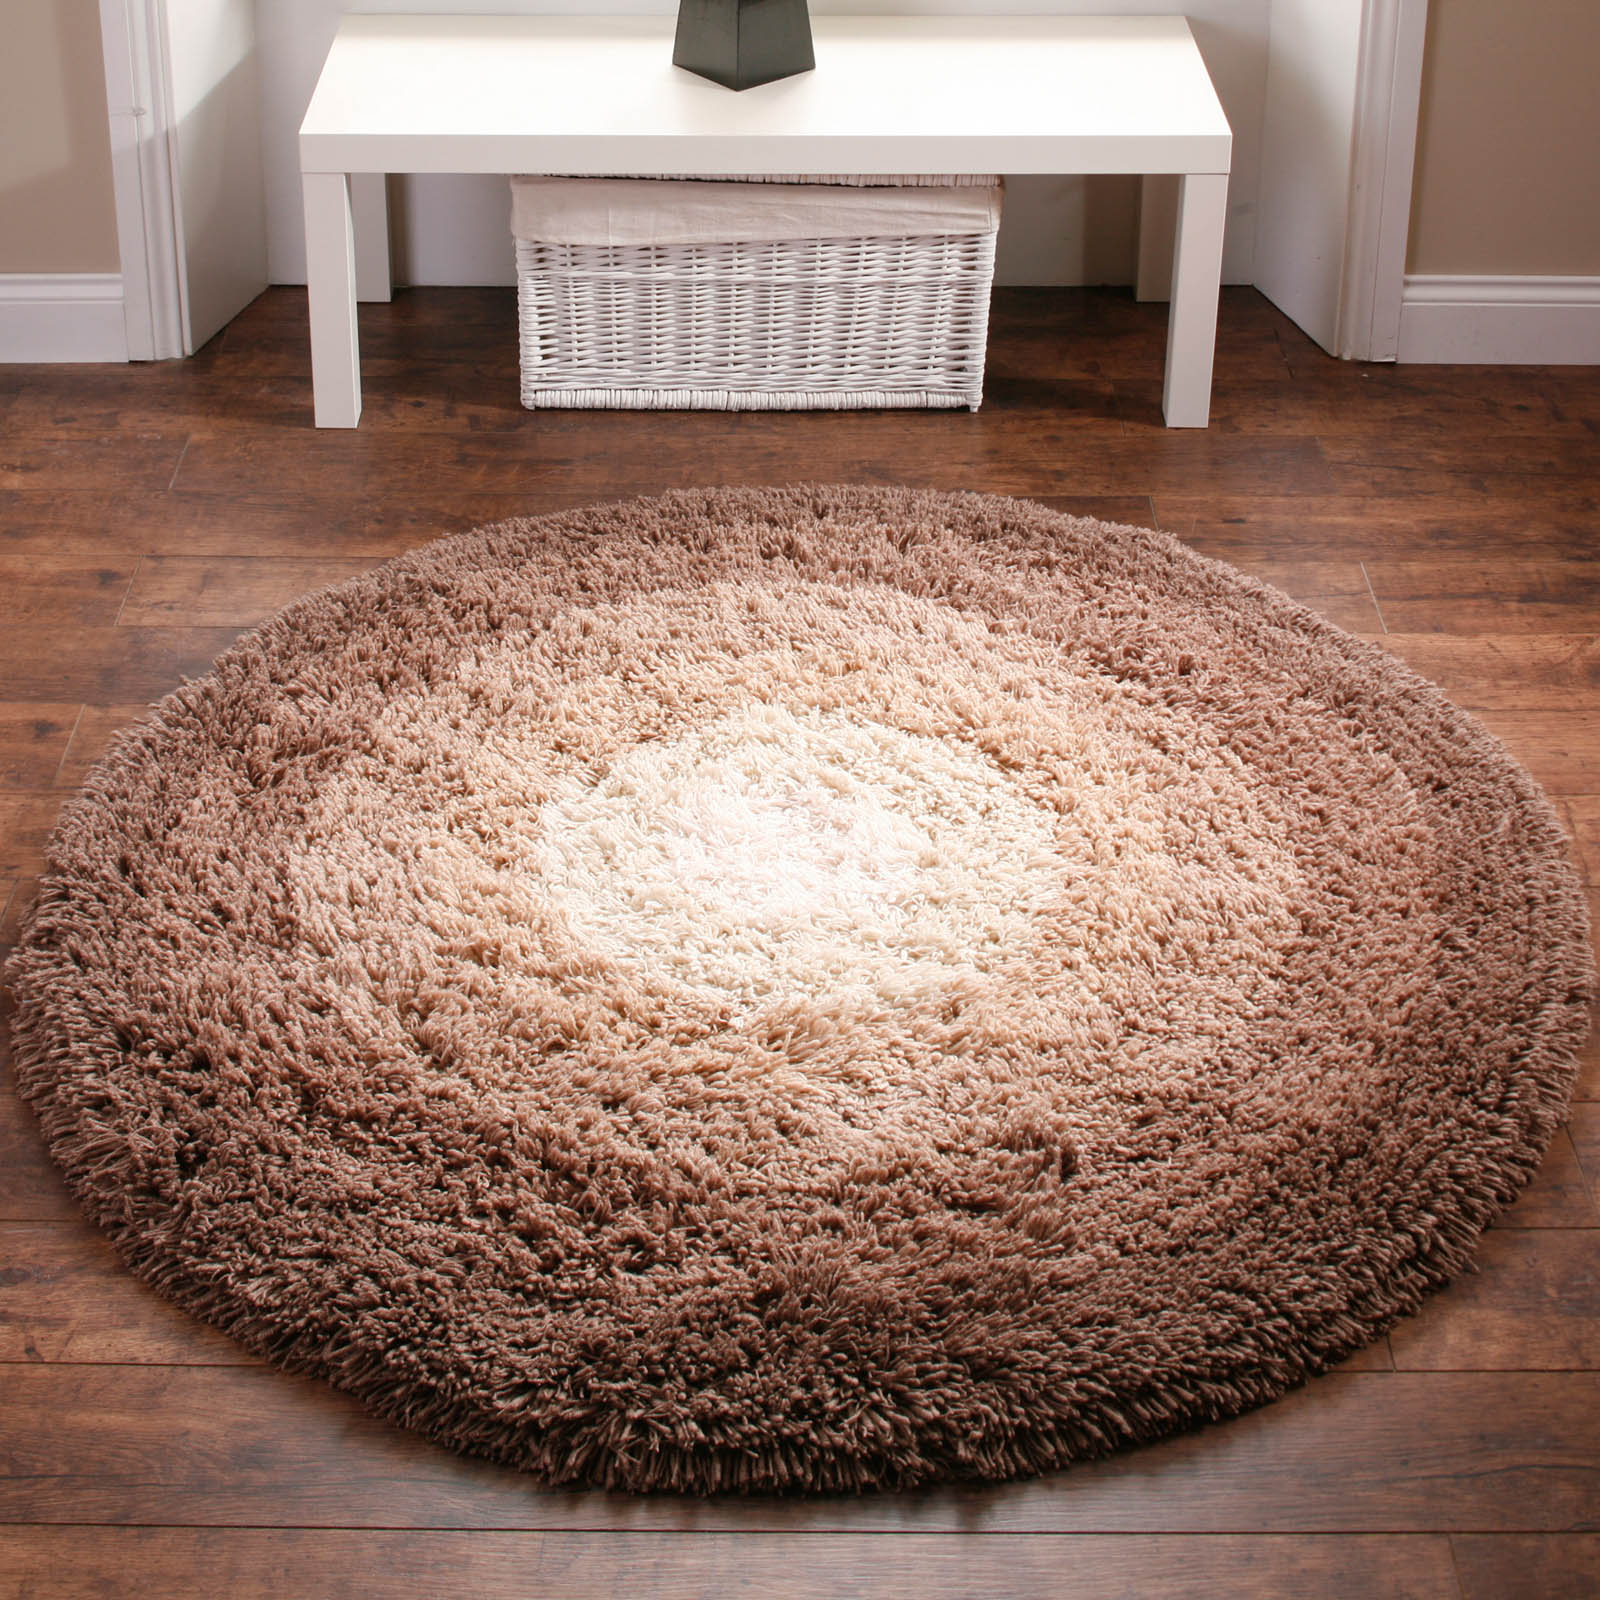 SHADOW RUGS IN BROWN - WASHABLE SHAGGY